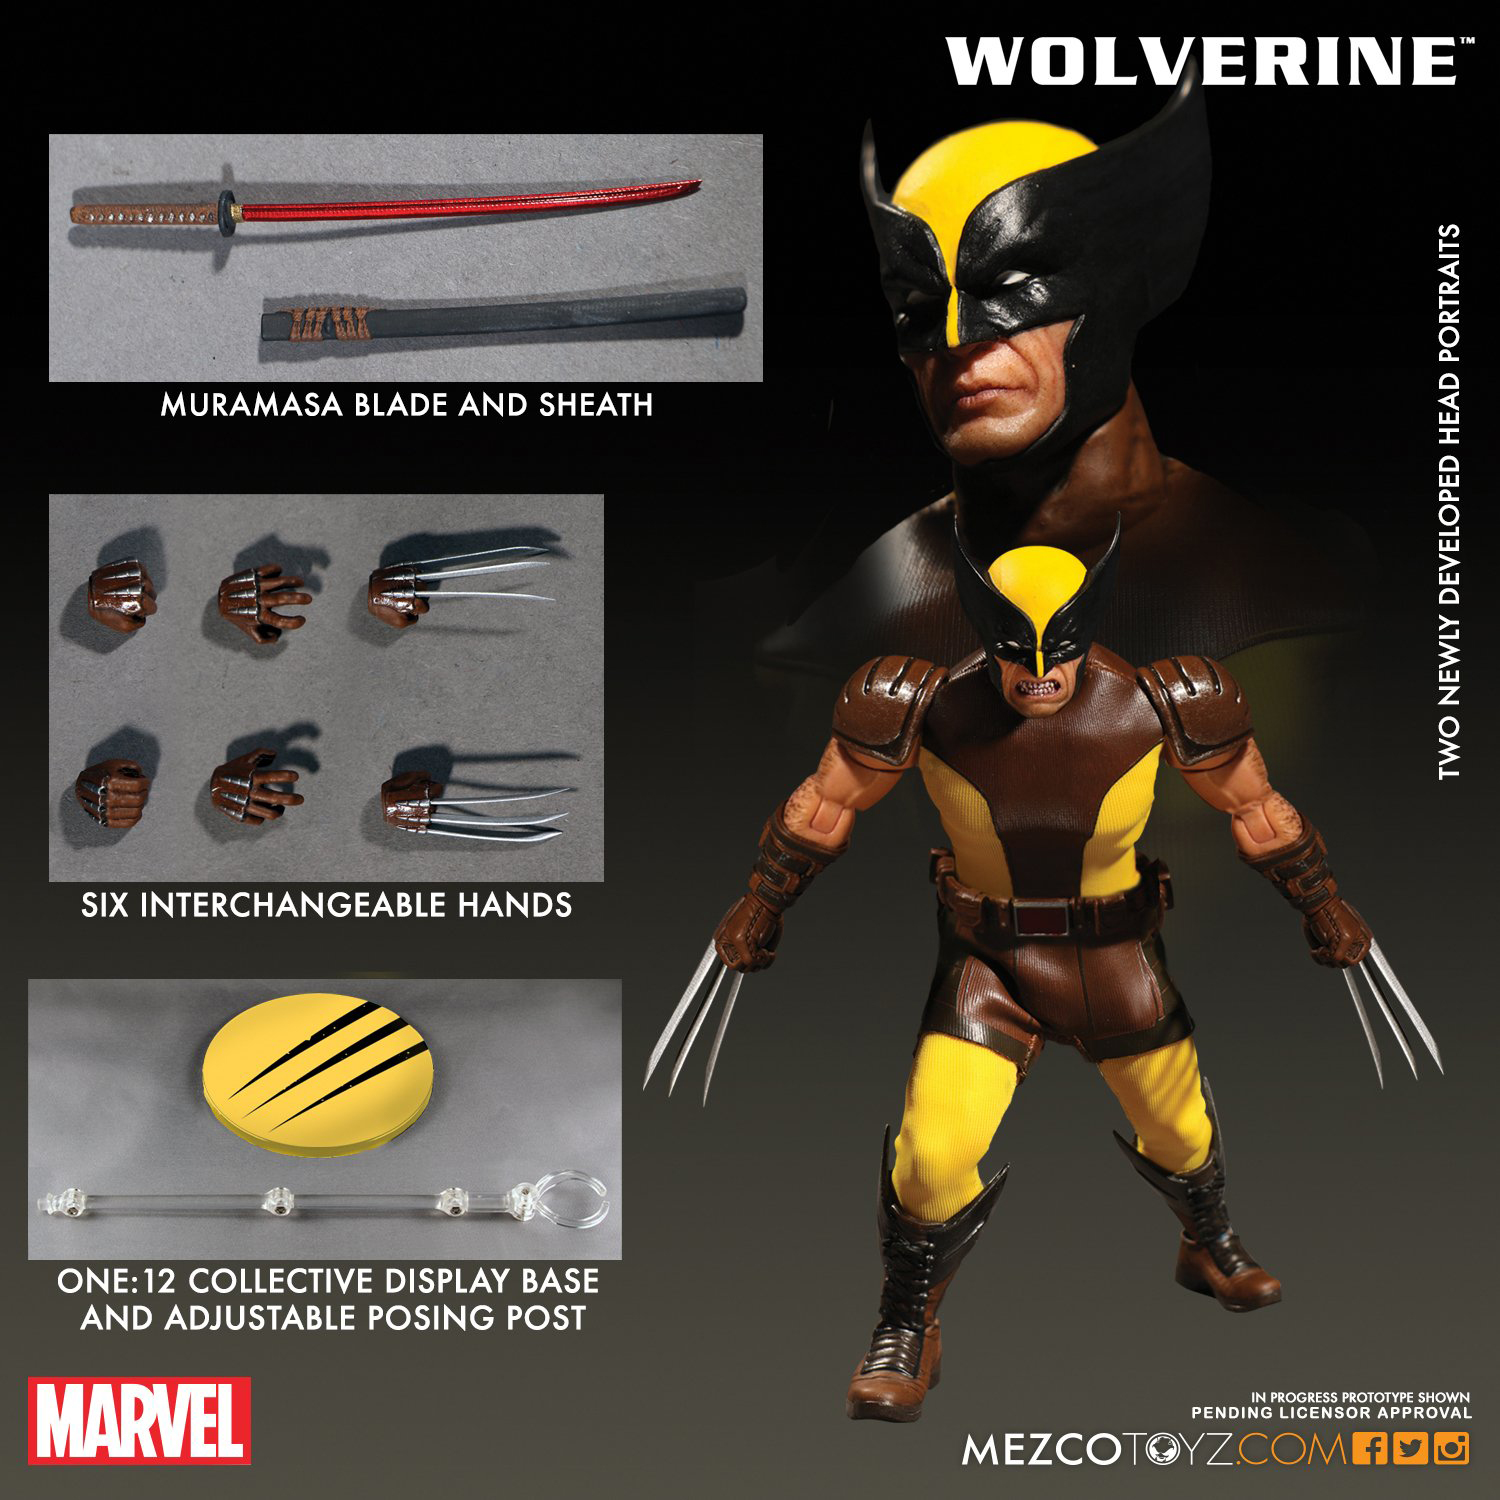 wolverine-mezco-one-12-collective-figure